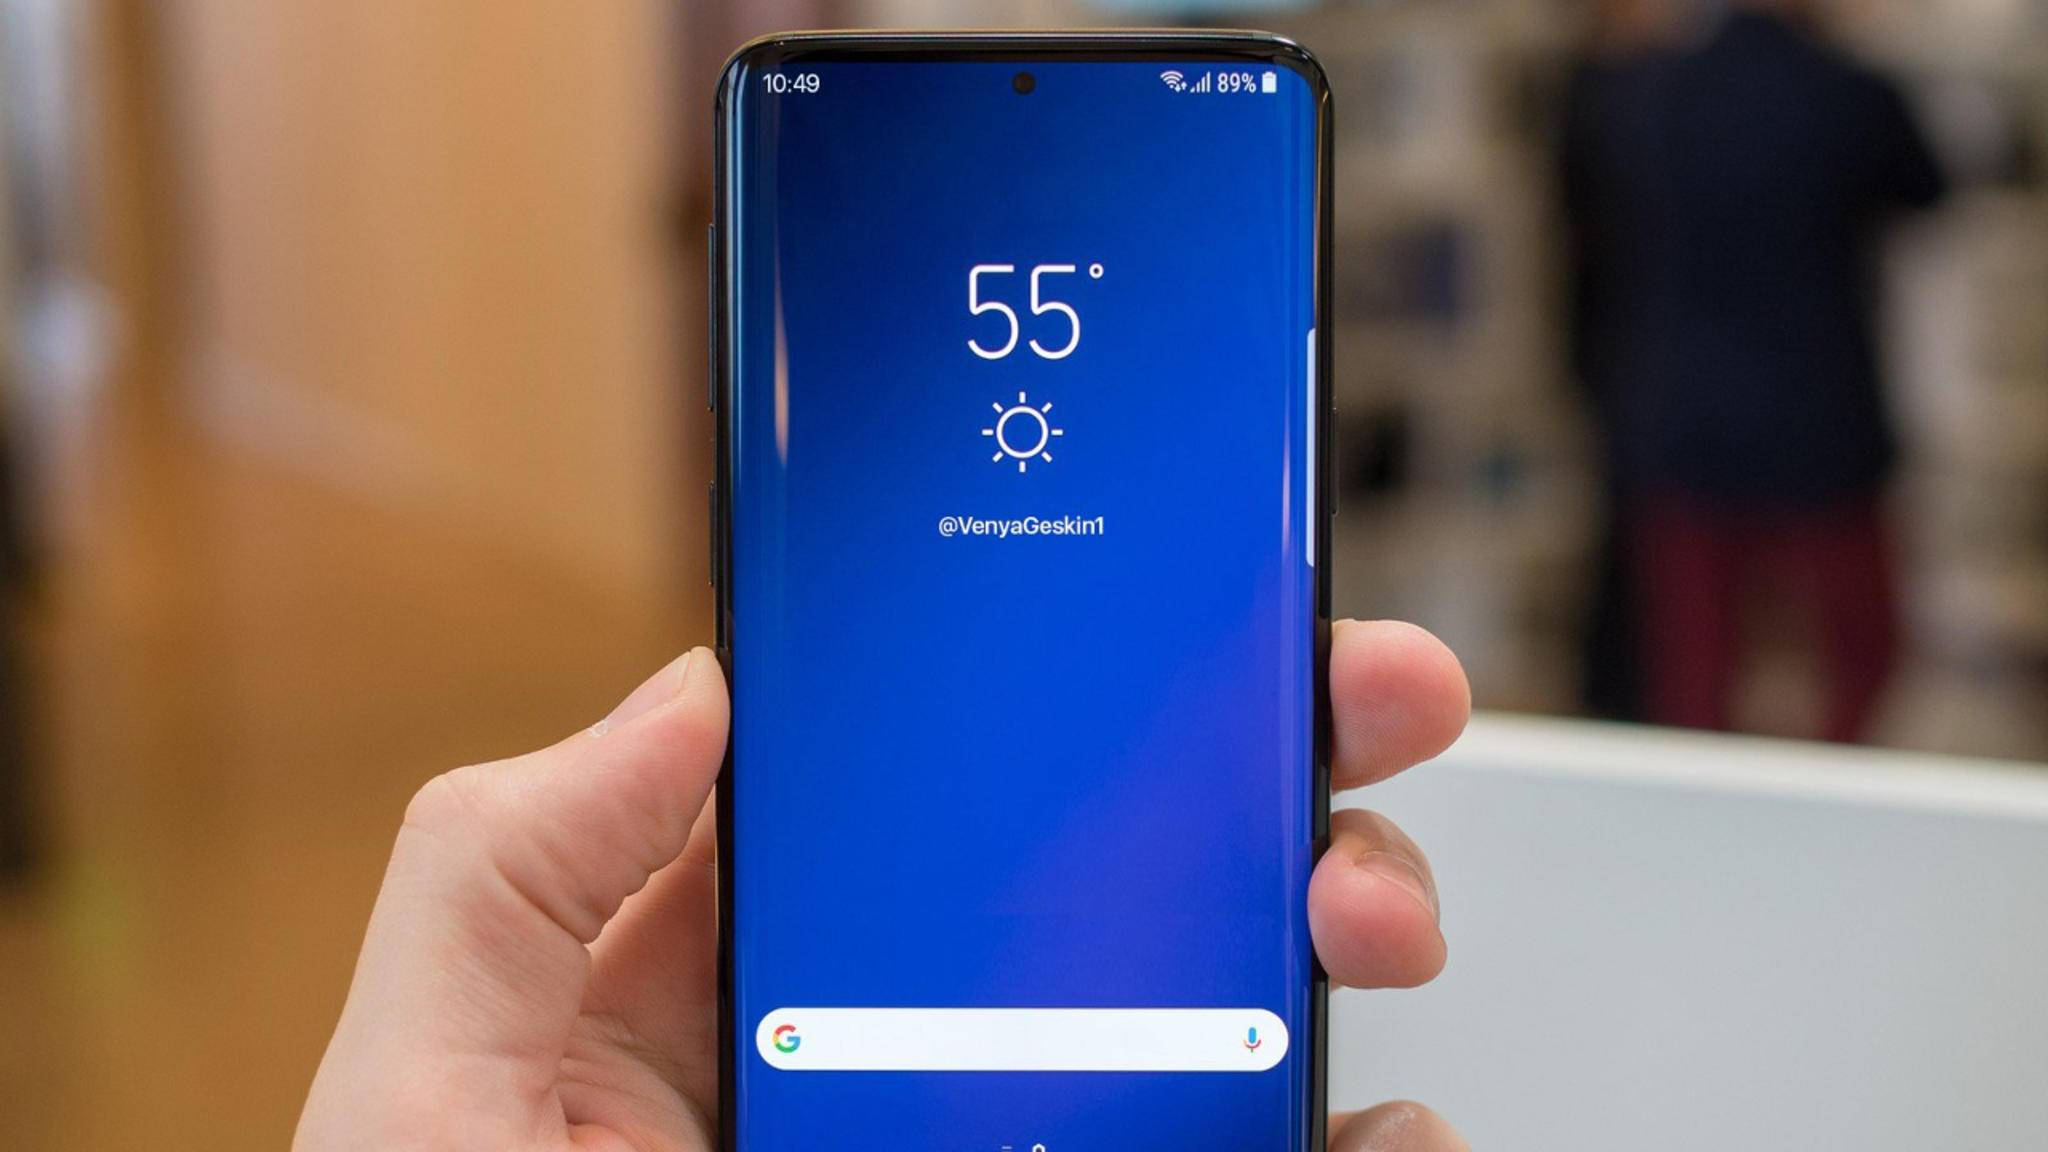 Eine geleakte Displayschutz-Folie deutet ein fast randloses Display beim Galaxy S10 an.